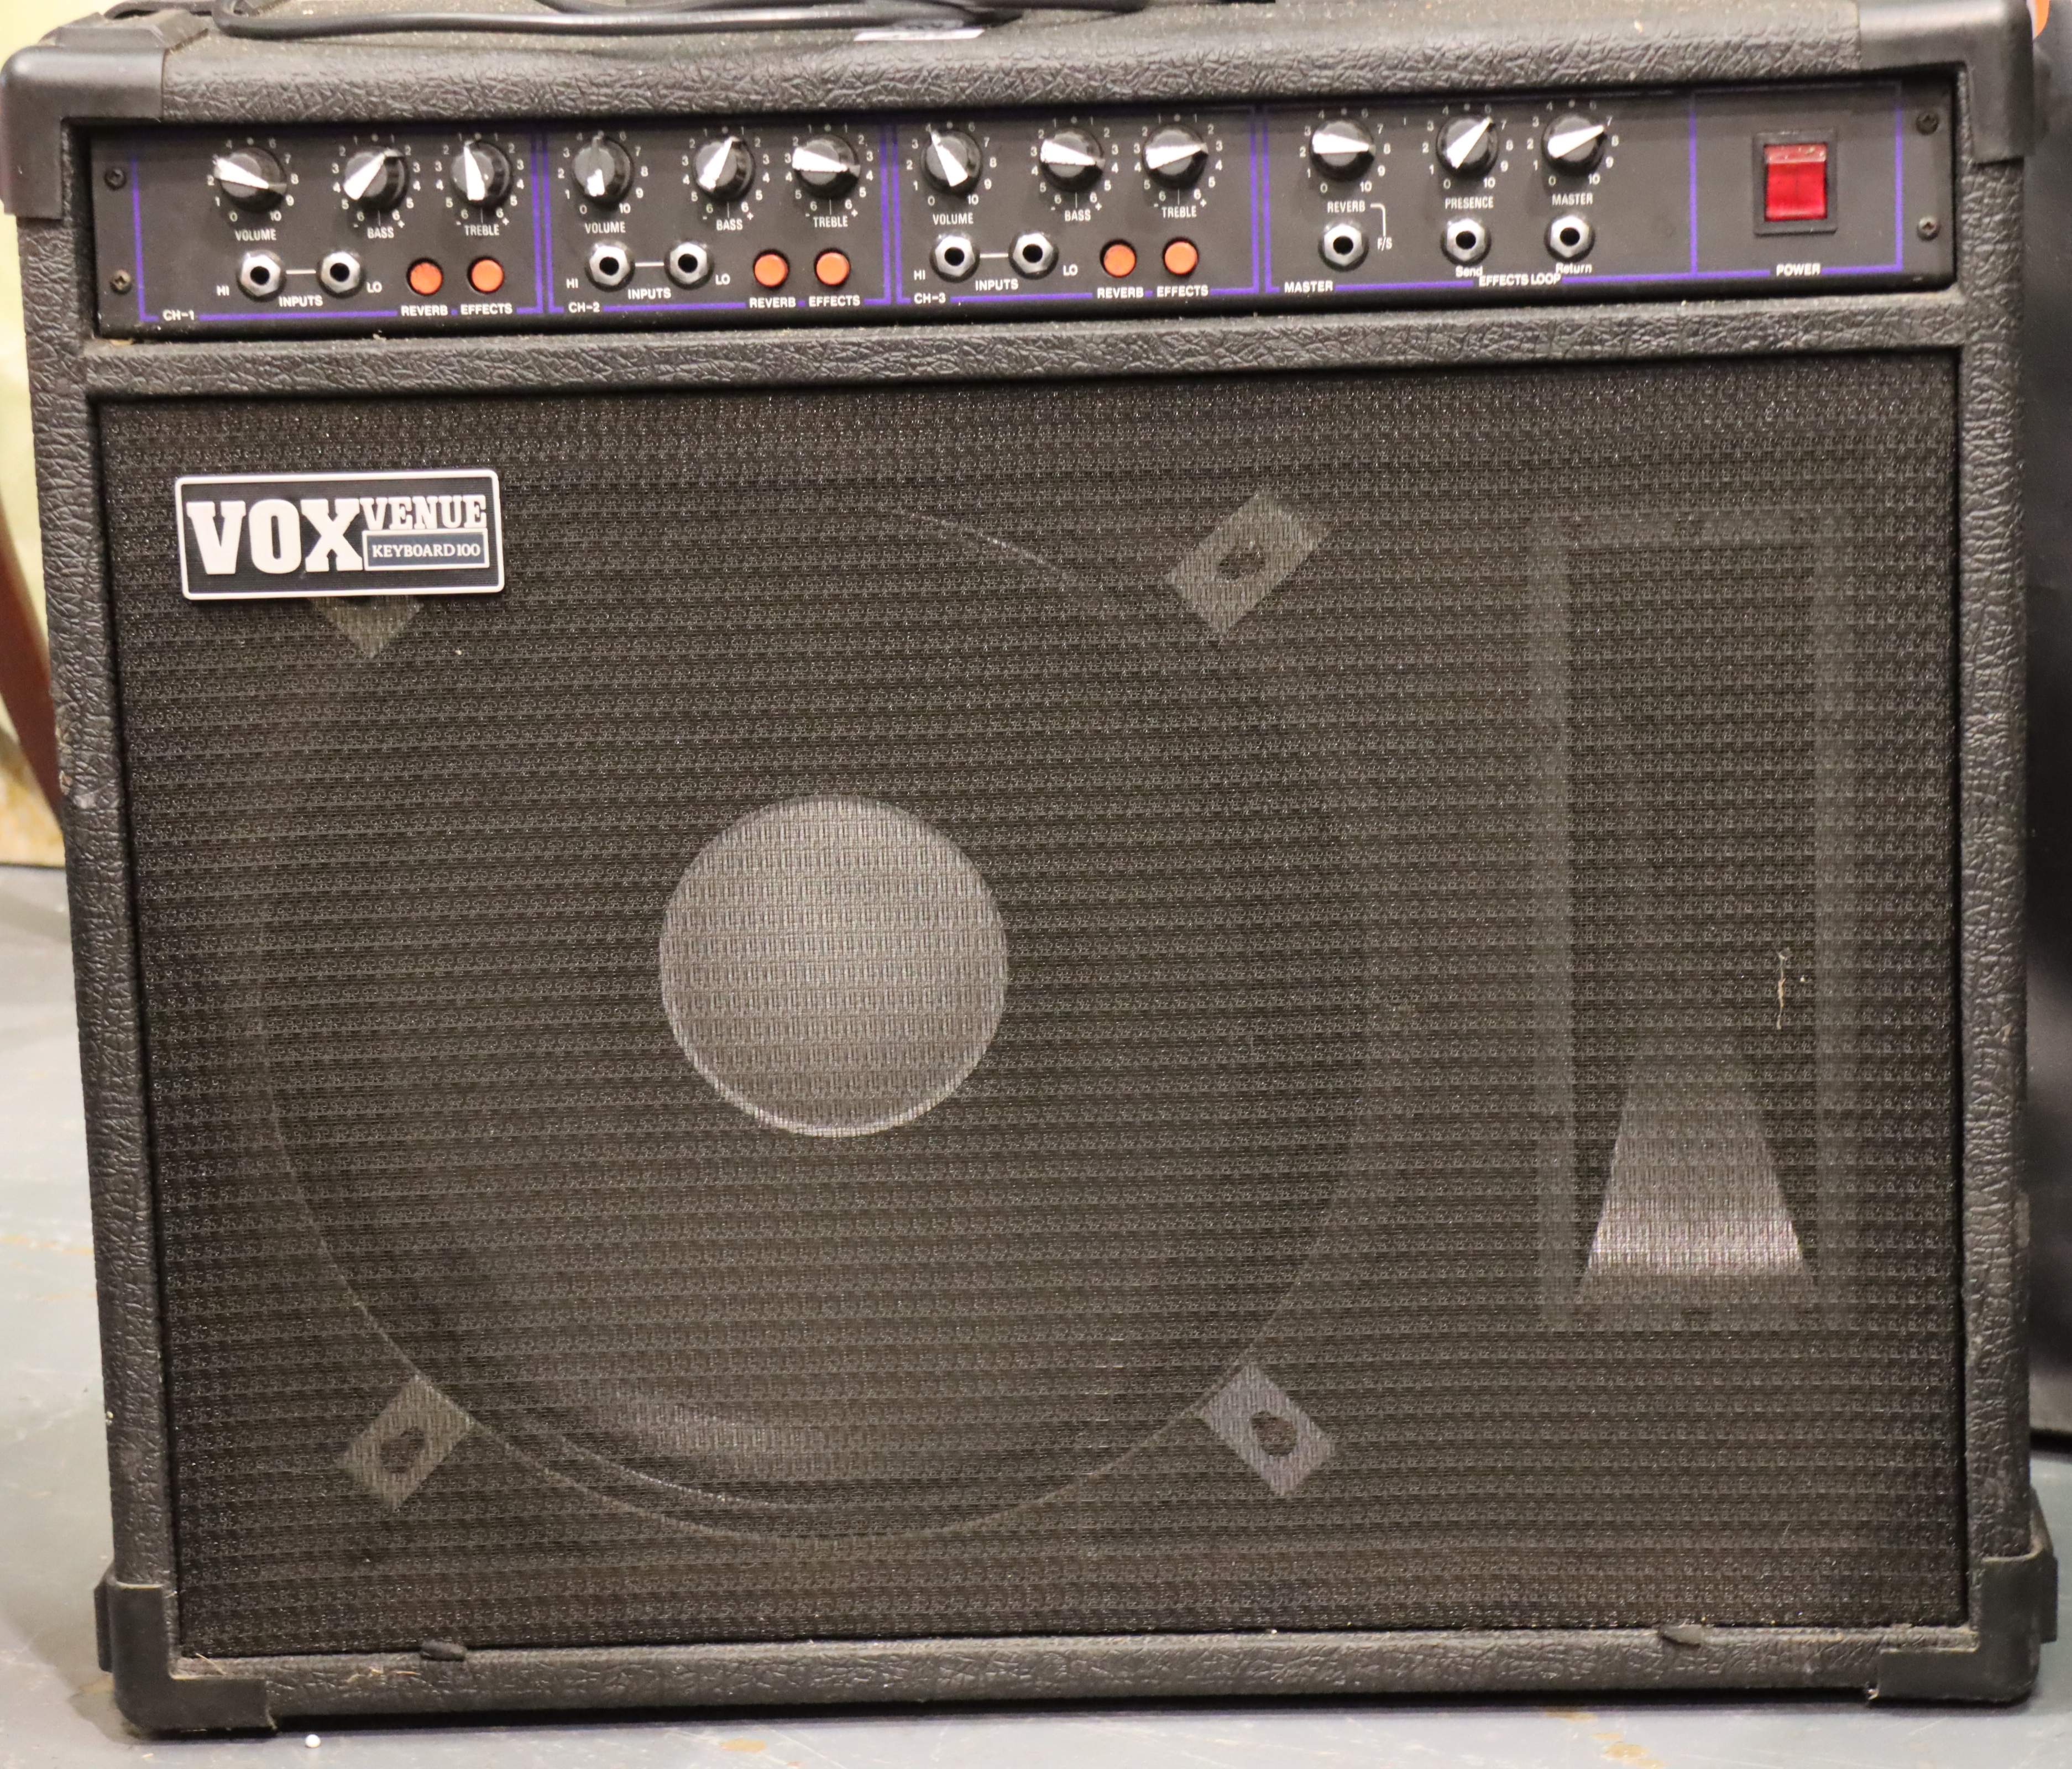 Vox Venue keyboard 100 amplifier. Not available for in-house P&P, contact Paul O'Hea at Mailboxes on